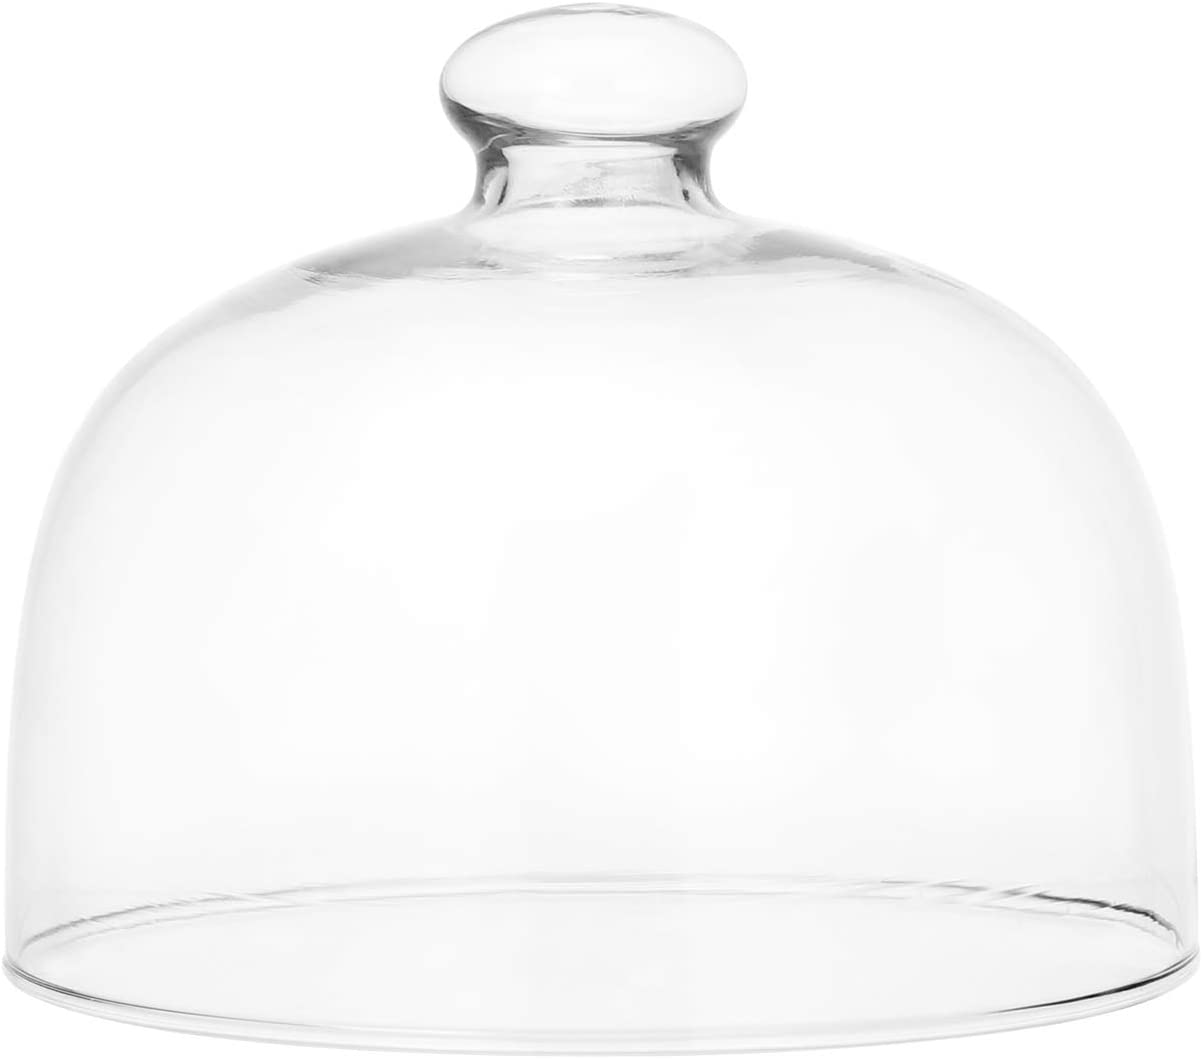 Hemoton Glass Round Cake Dome Cover, Food Plate Lid Clear Protective Cover for Home Baking Cake Dessert Display Platter Cover, 5.1 x 4.3 Inch